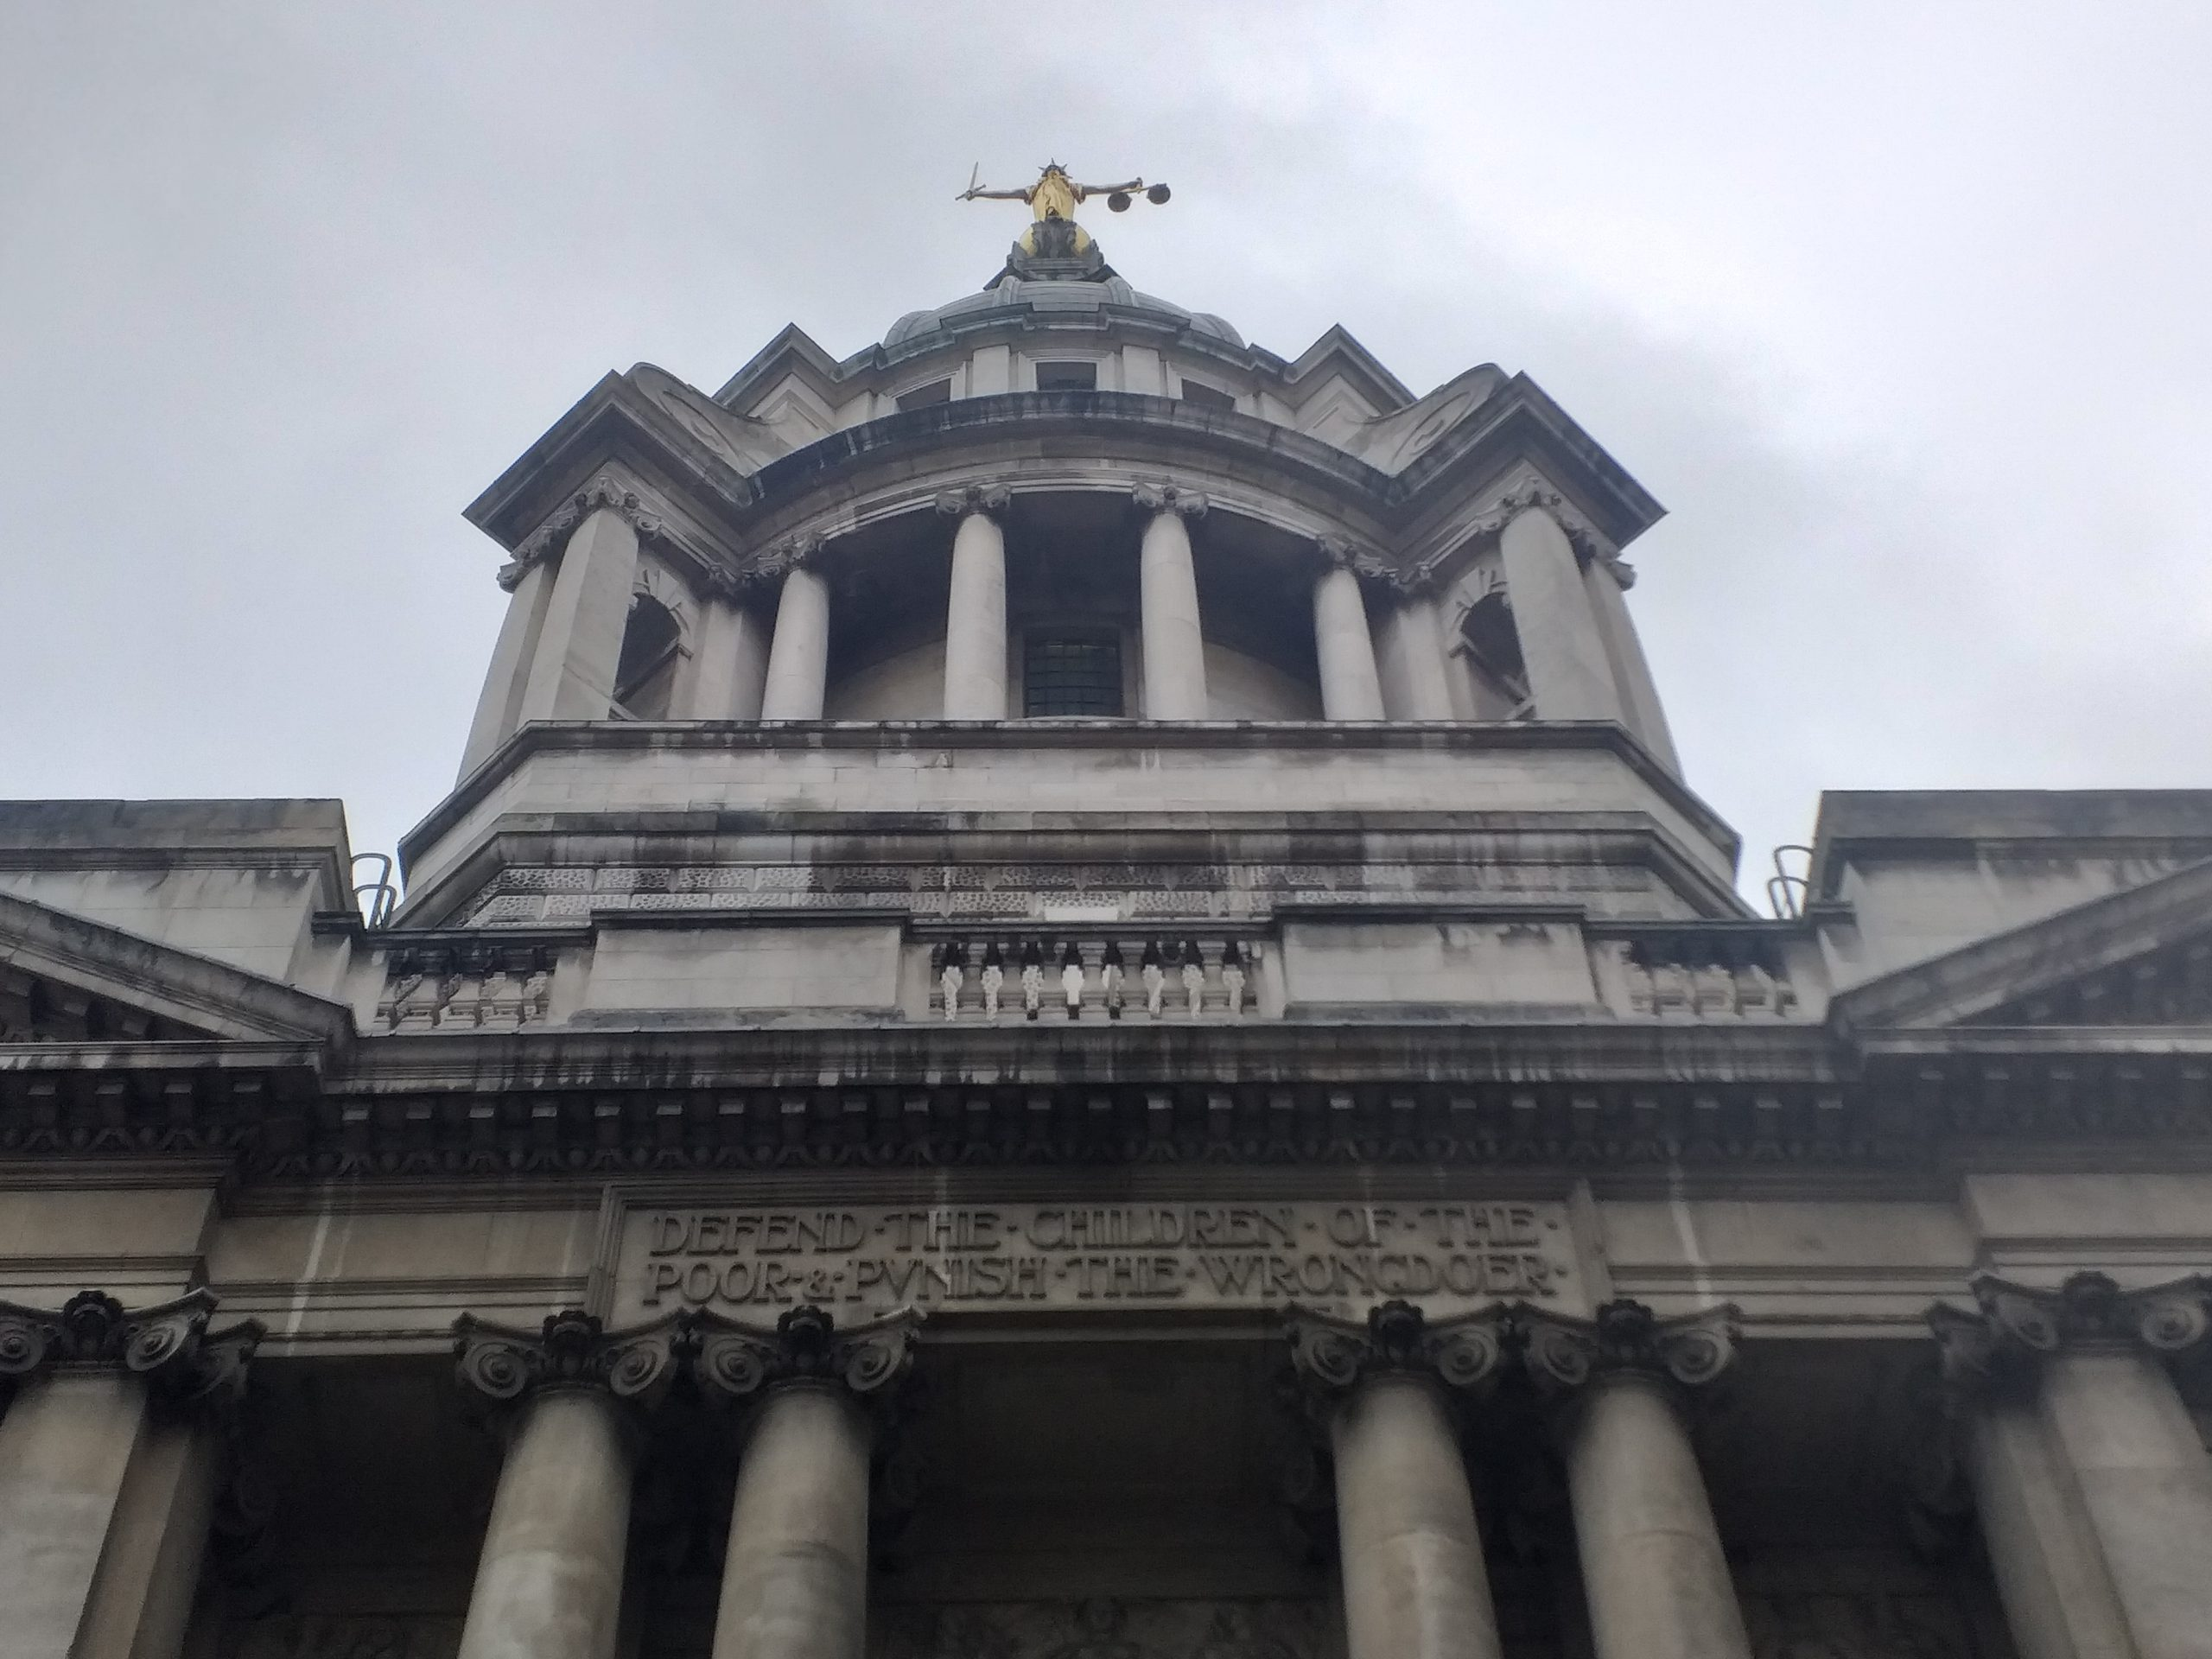 Old Bailey (Photo: Philipp Röttgers)